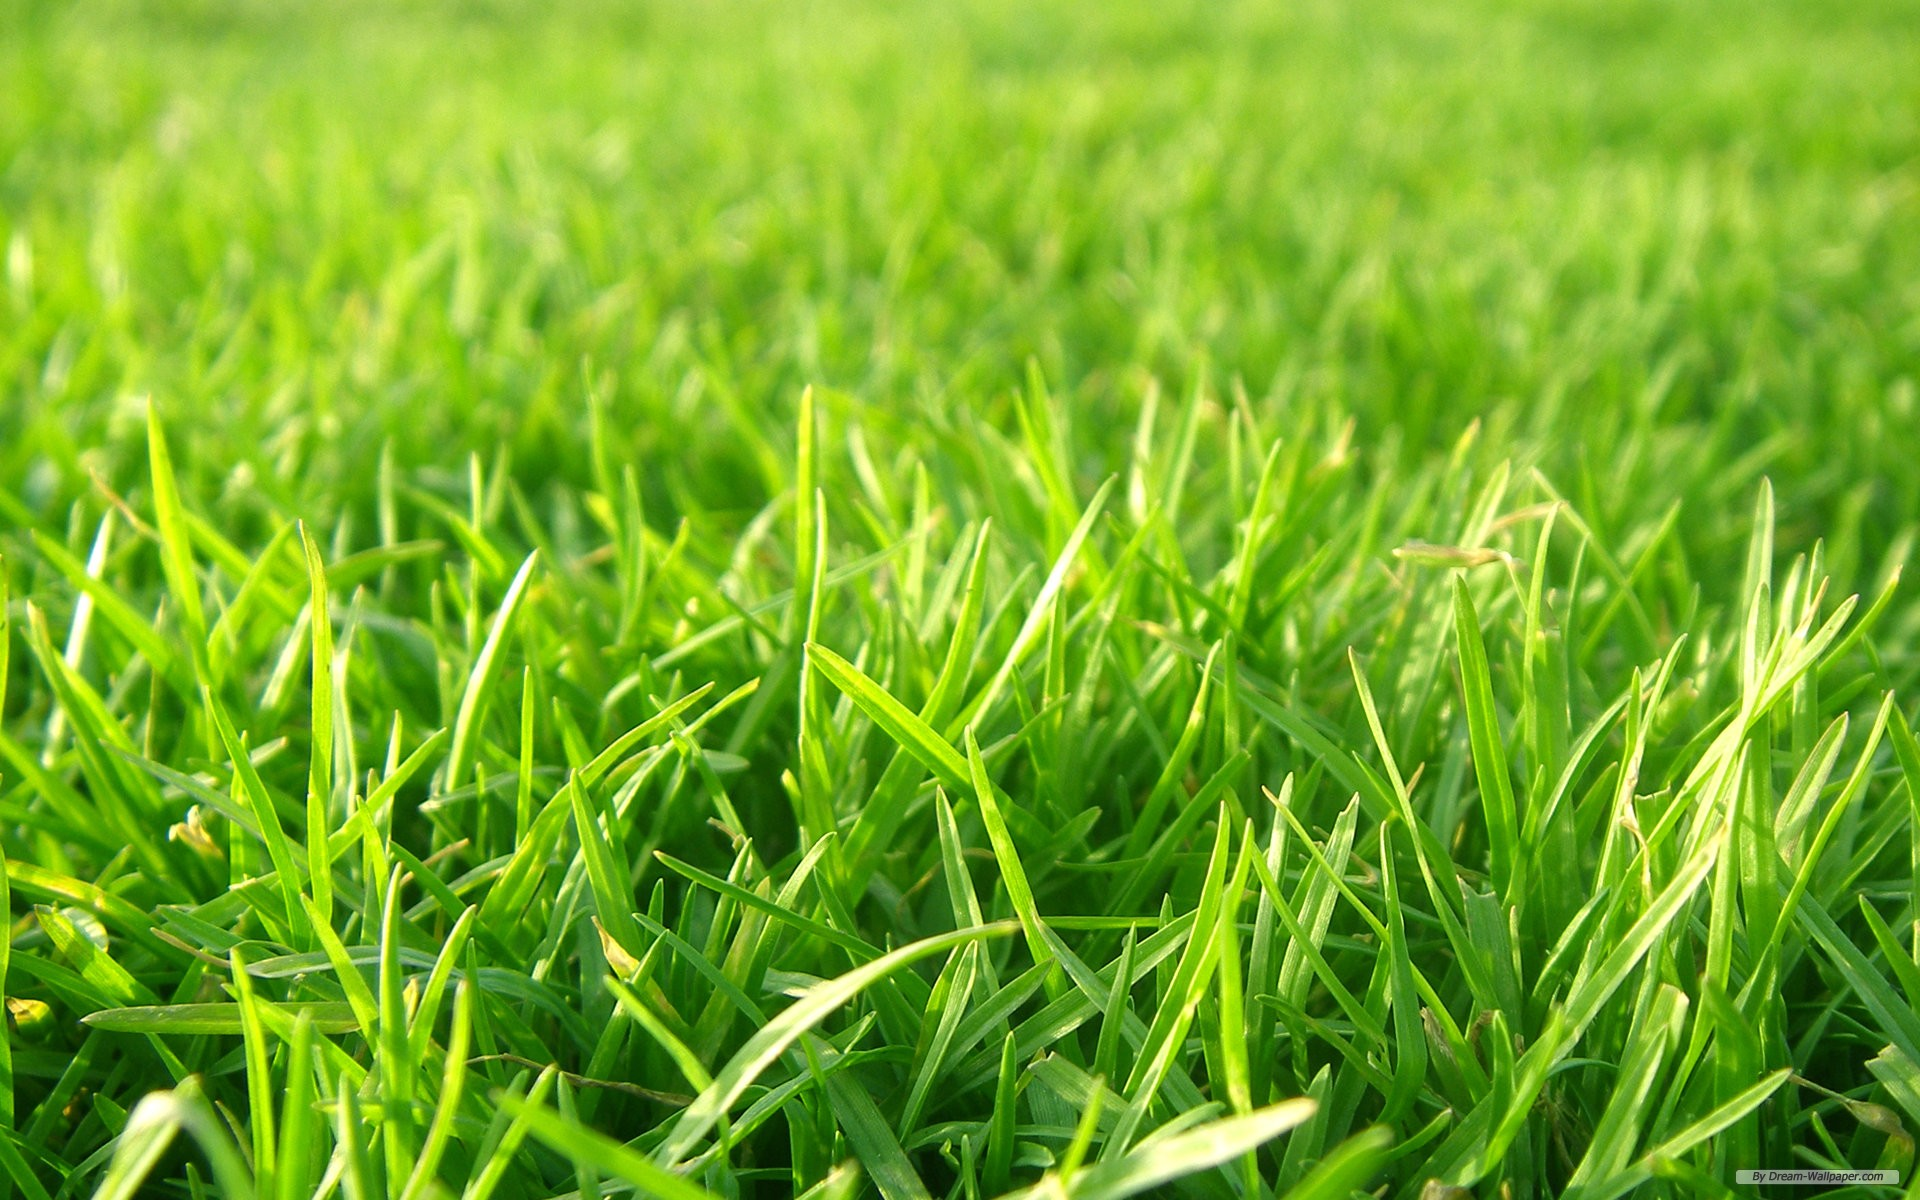 wallpaper nature grass football pitches background 1920x1200